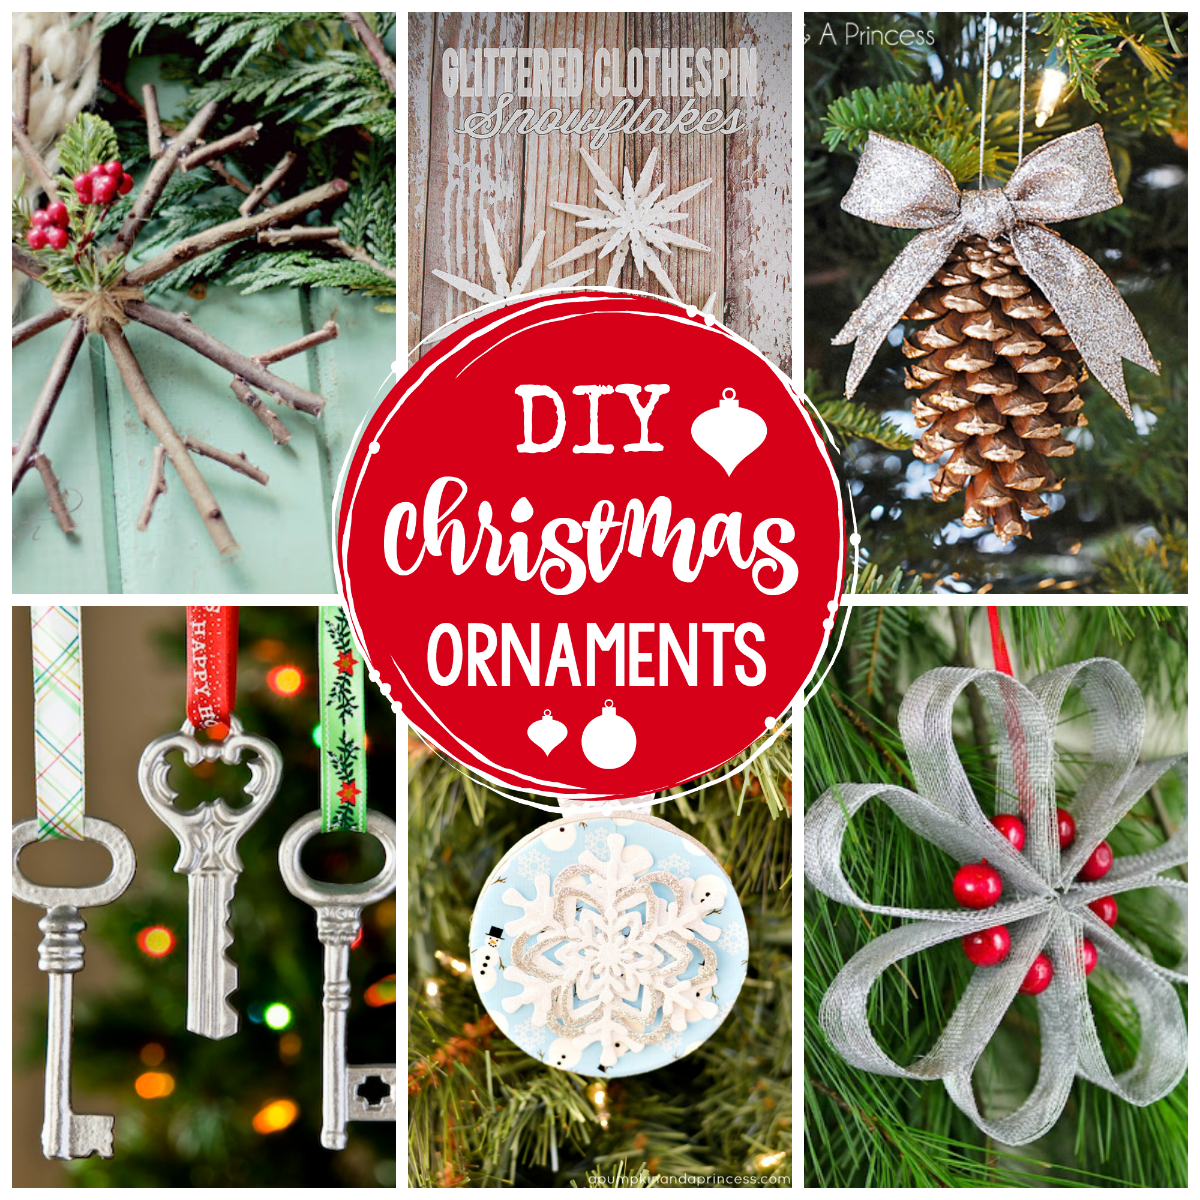 diy christmas ornaments to make this year - Decorating Christmas Ornaments